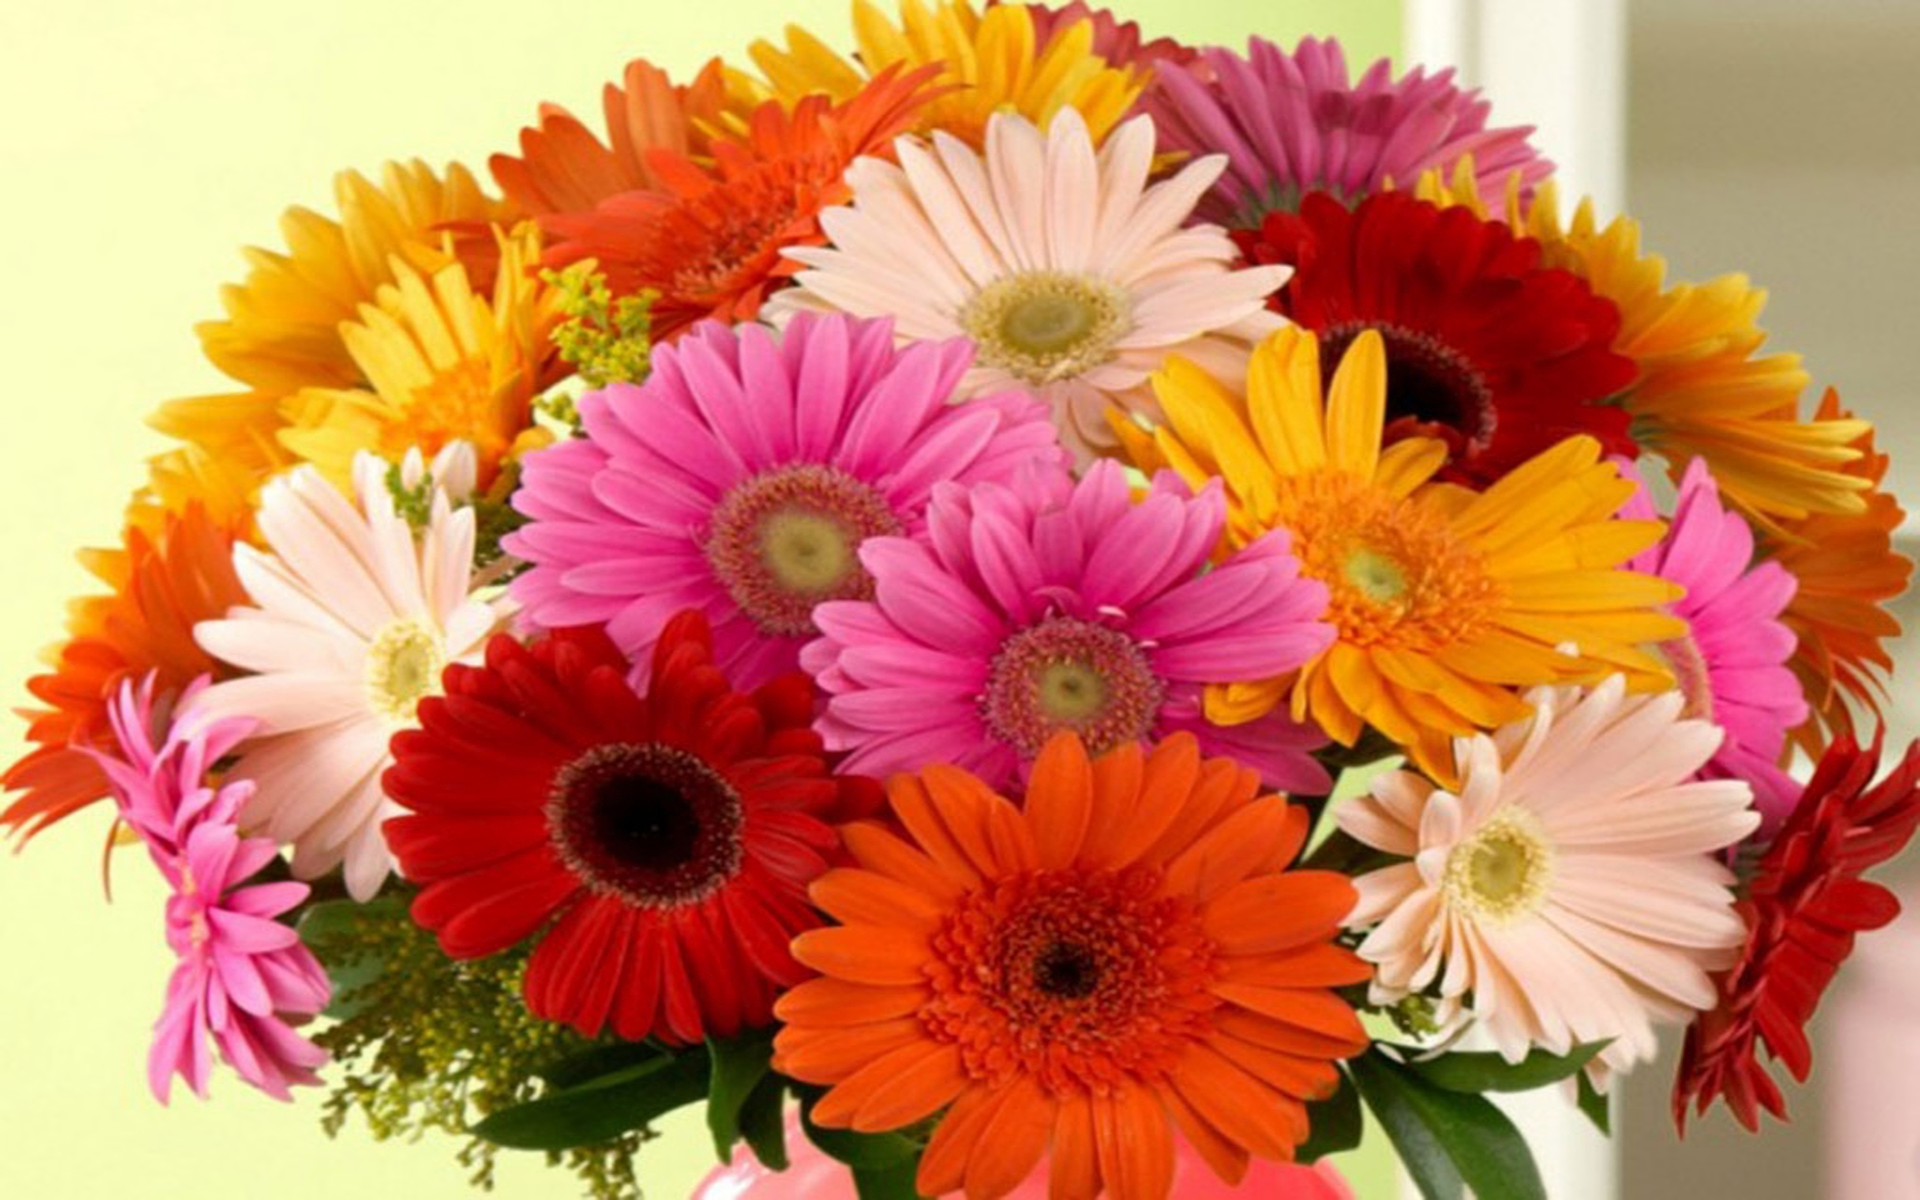 Gerbera bouquet full hd wallpaper and background image 1920x1200 man made flower bouquet gerbera colorful red flower yellow flower white flower pink flower wallpaper izmirmasajfo Image collections